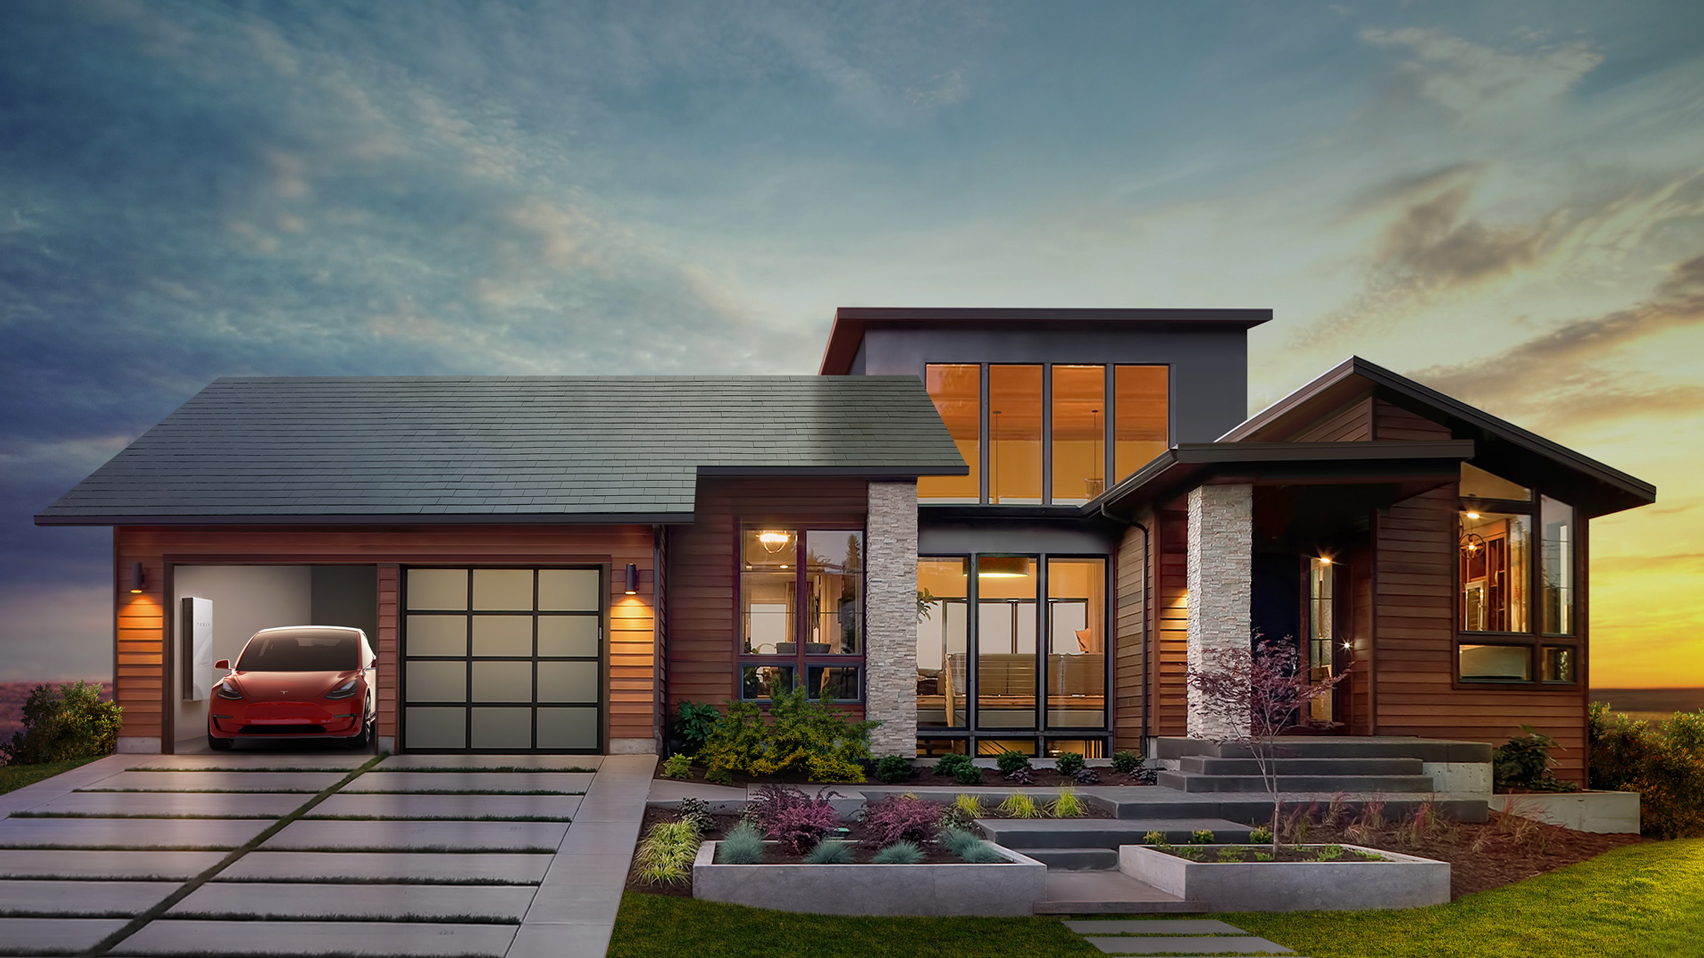 Freedonia Roofing Expert Weighs in on Elon Musk's Solar Plans